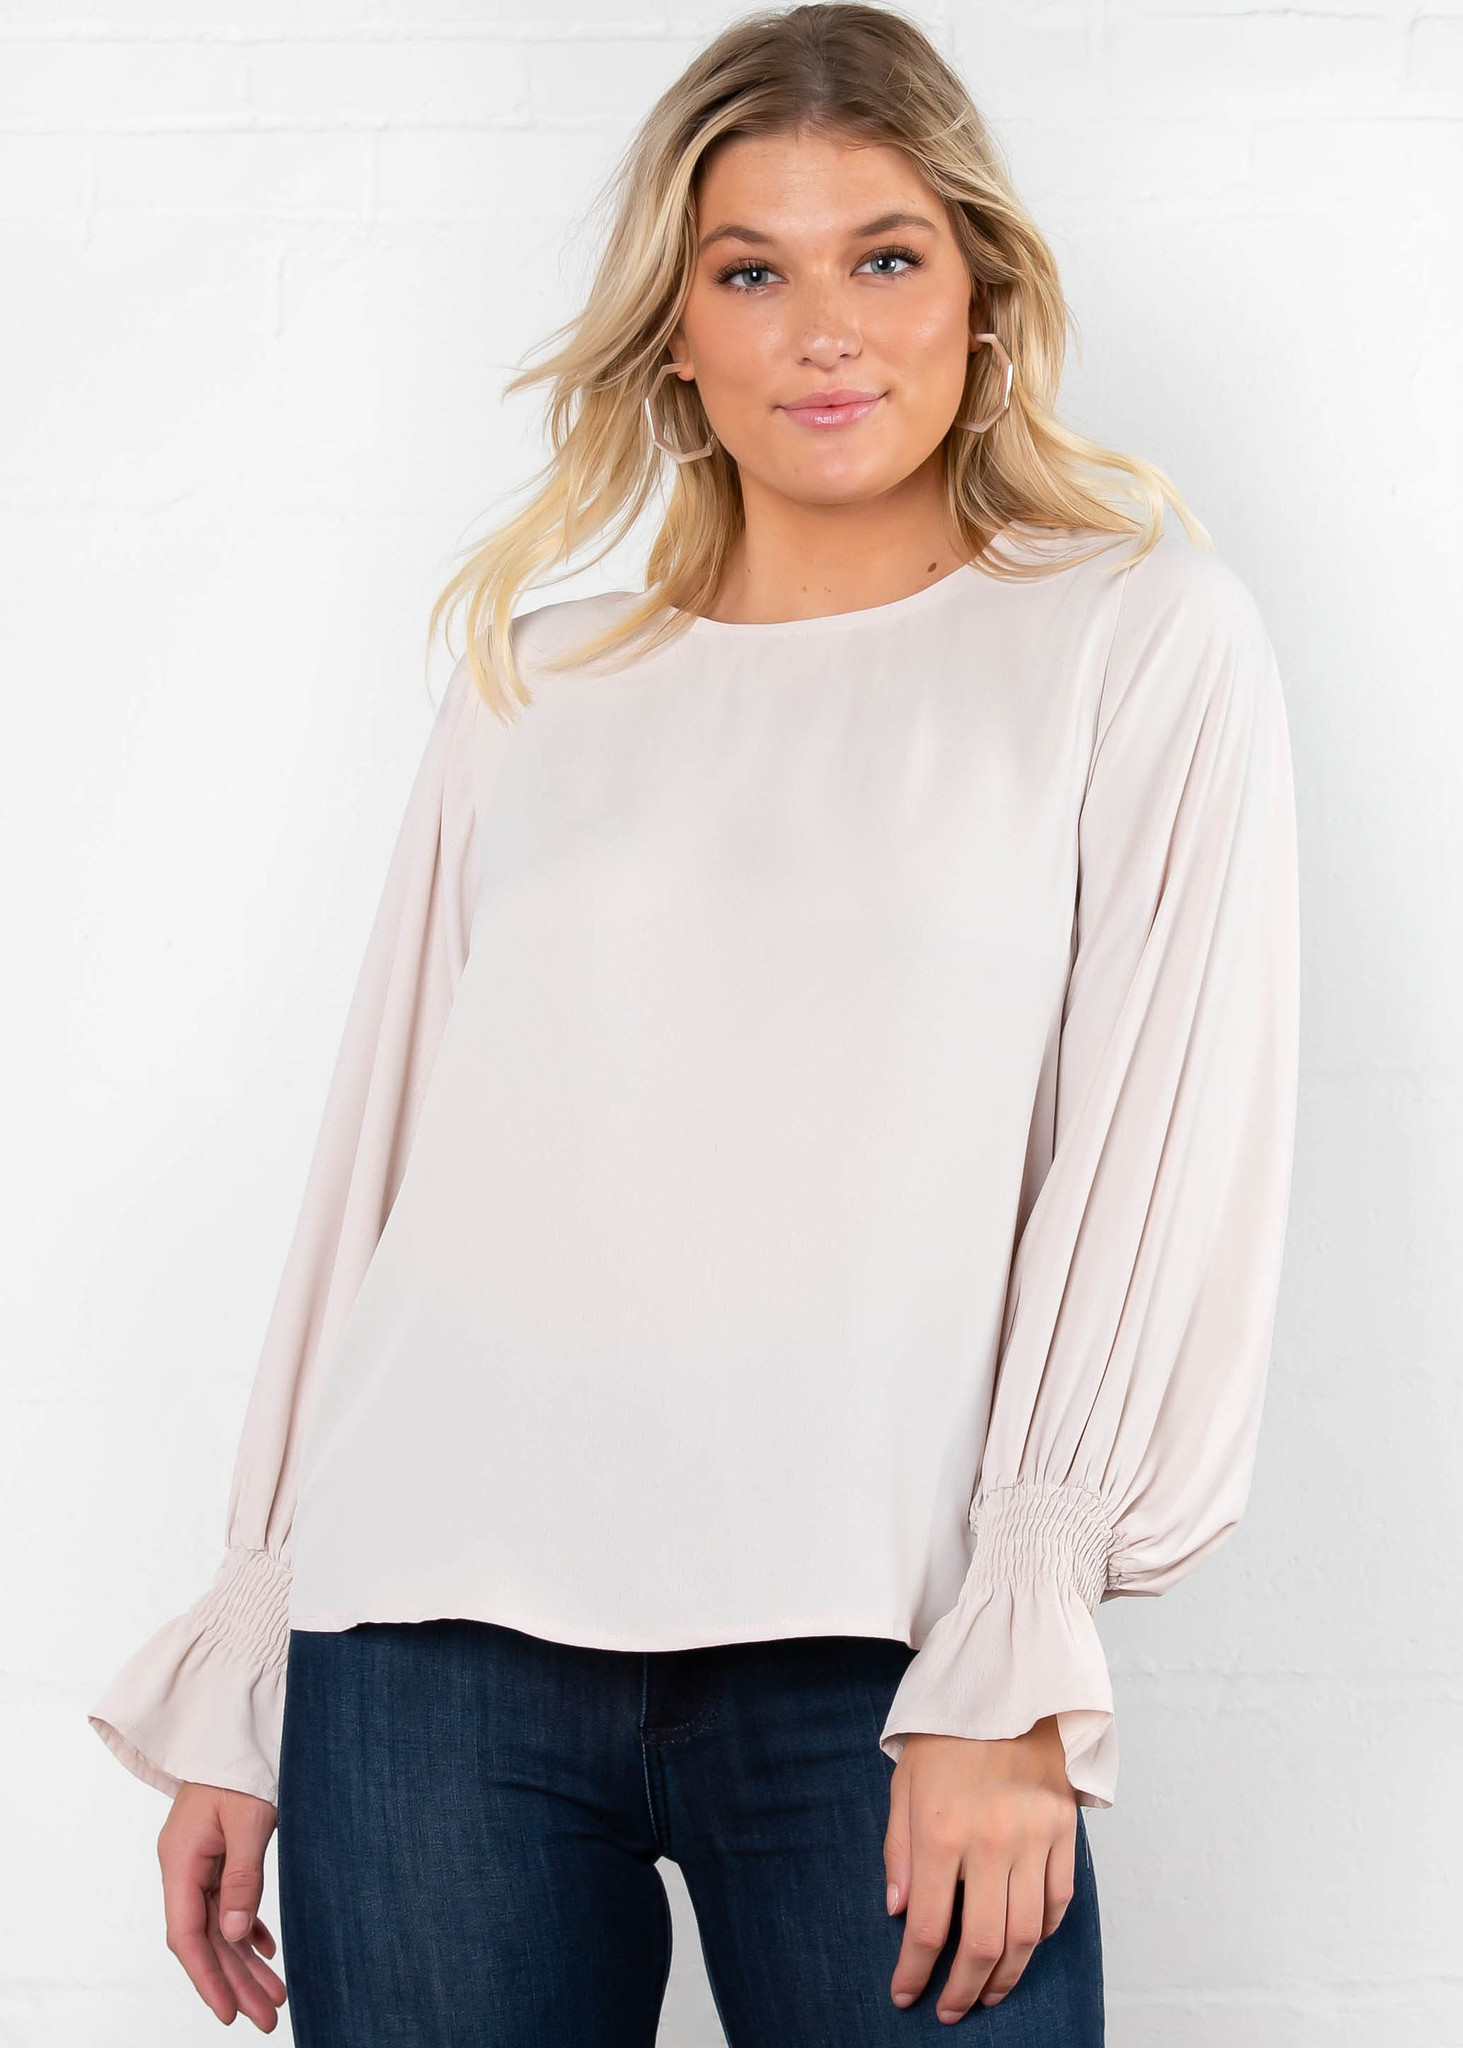 OFFICE HOURS CHAMPAGNE BLOUSE